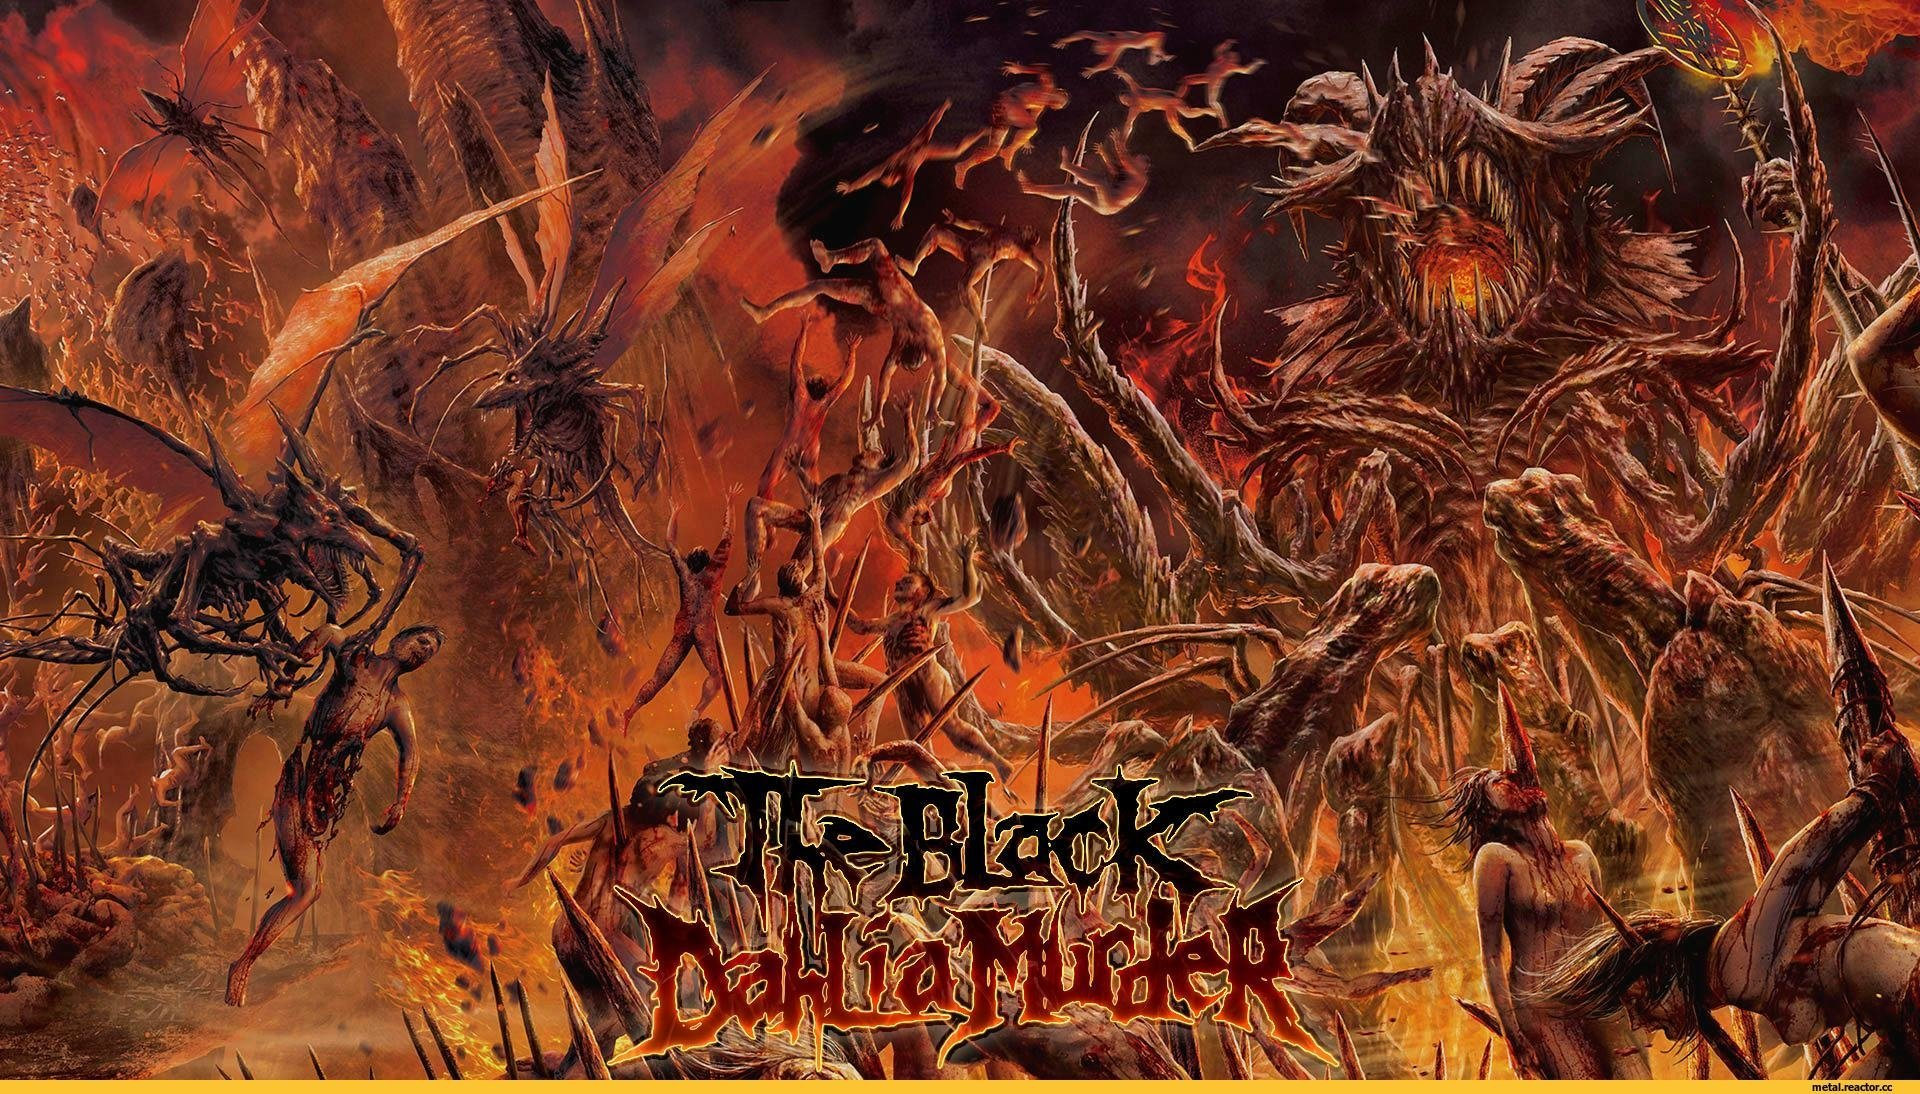 The Black Dahlia Murder Hd Wallpaper Background Image 1920x1094